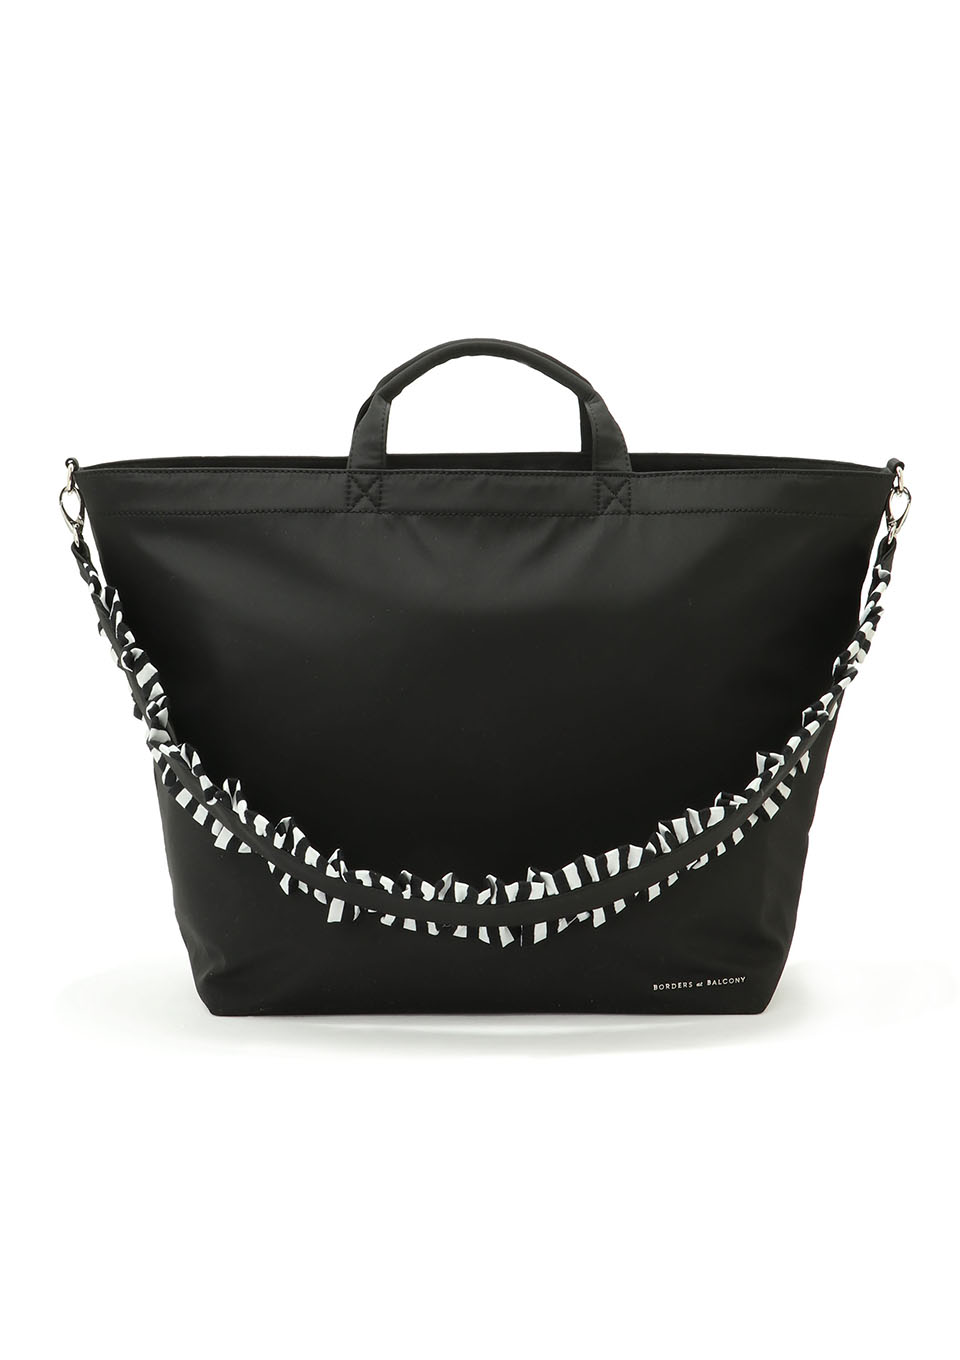 CITY POLLY FRILL STRAP TOTE